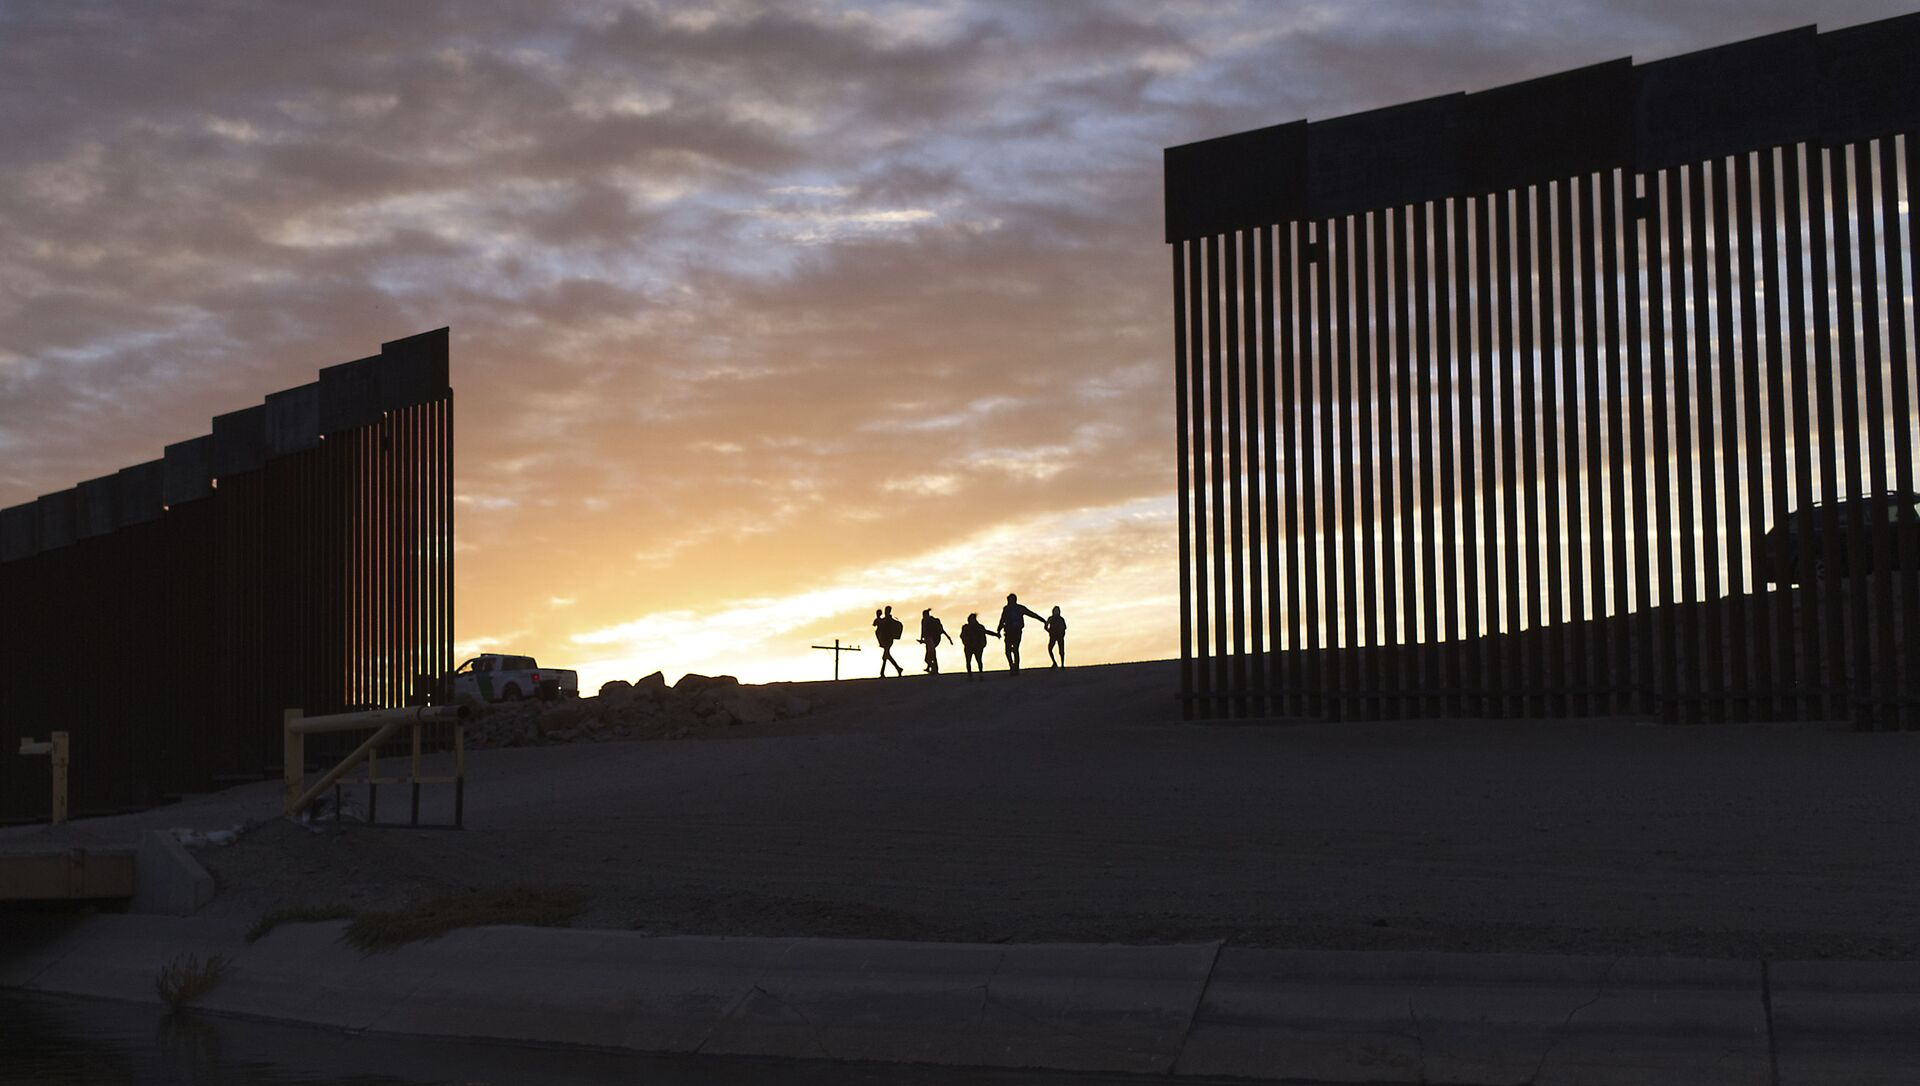 A pair of migrant families from Brazil pass through a gap in the border wall to reach the United States after crossing from Mexico in Yuma, Ariz., Thursday, June 10, 2021, to seek asylum. - Sputnik International, 1920, 11.06.2021